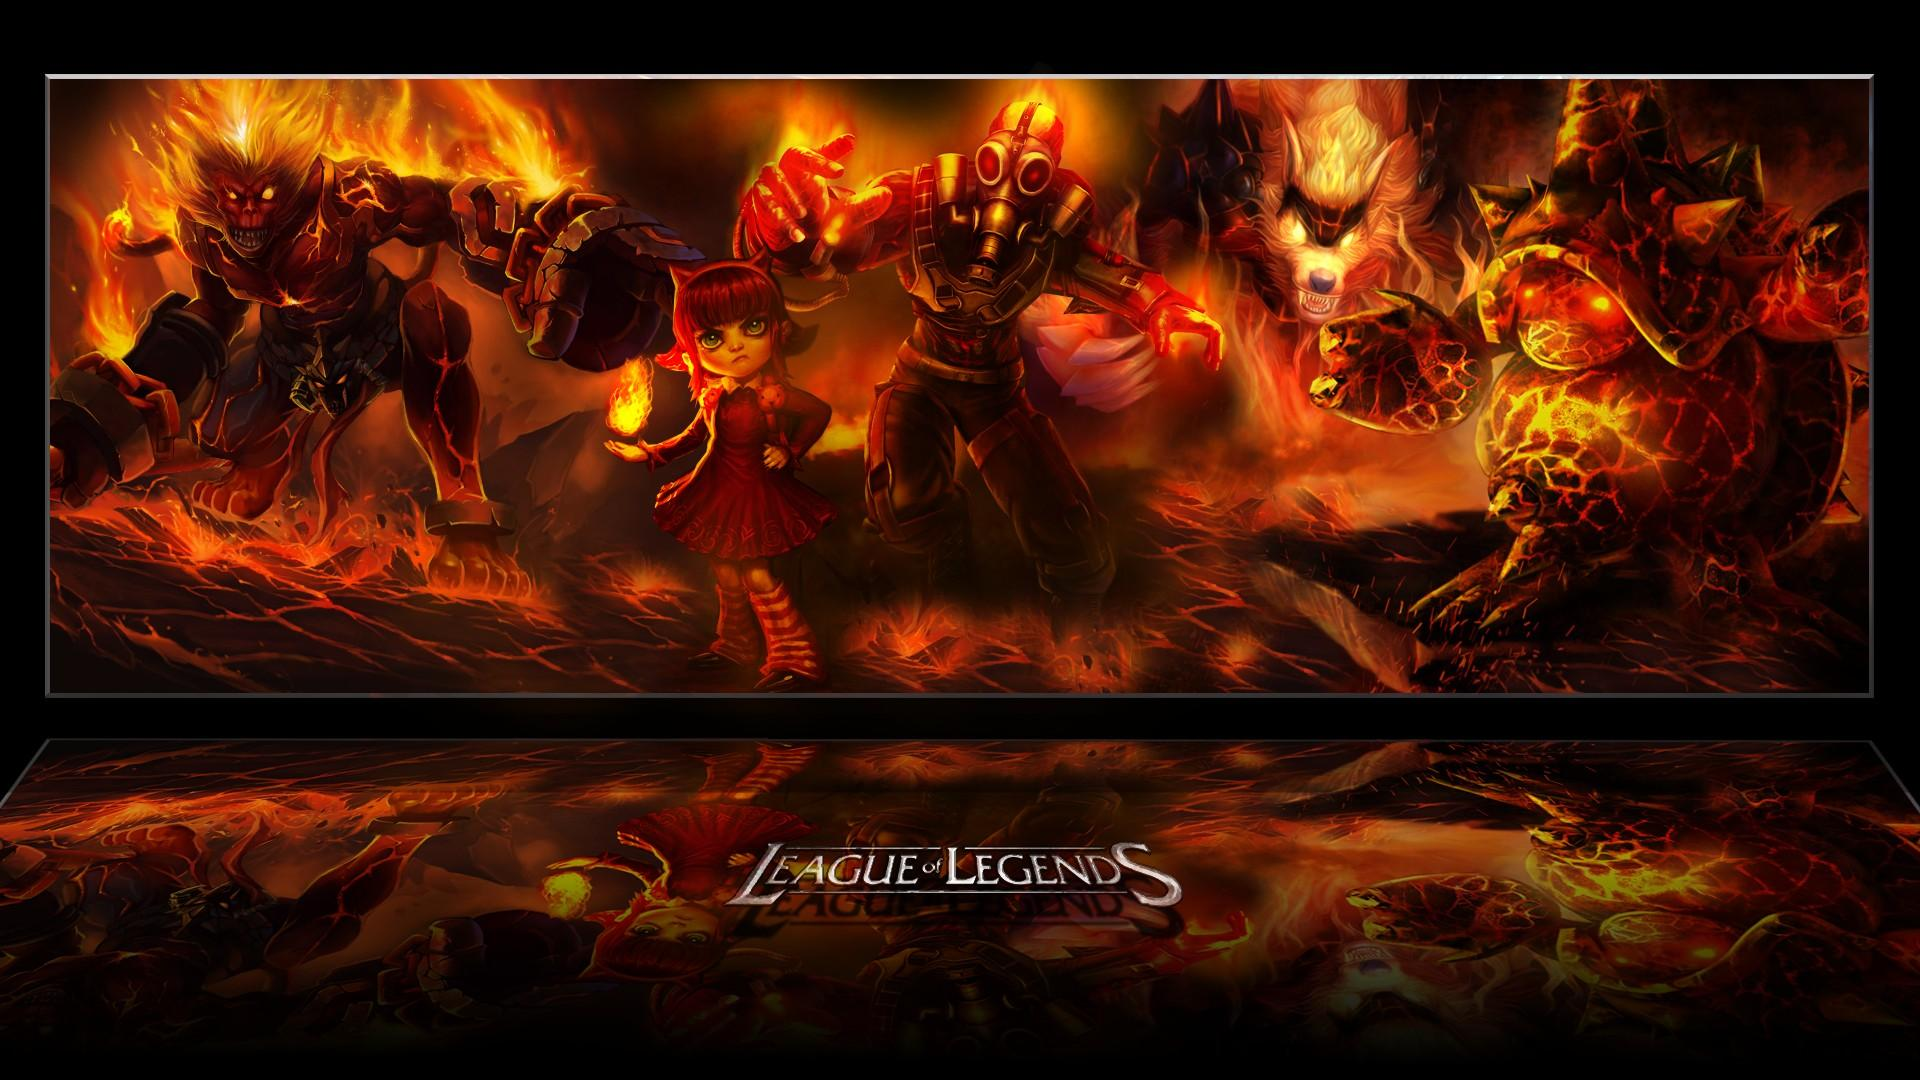 league of legends dynamic background